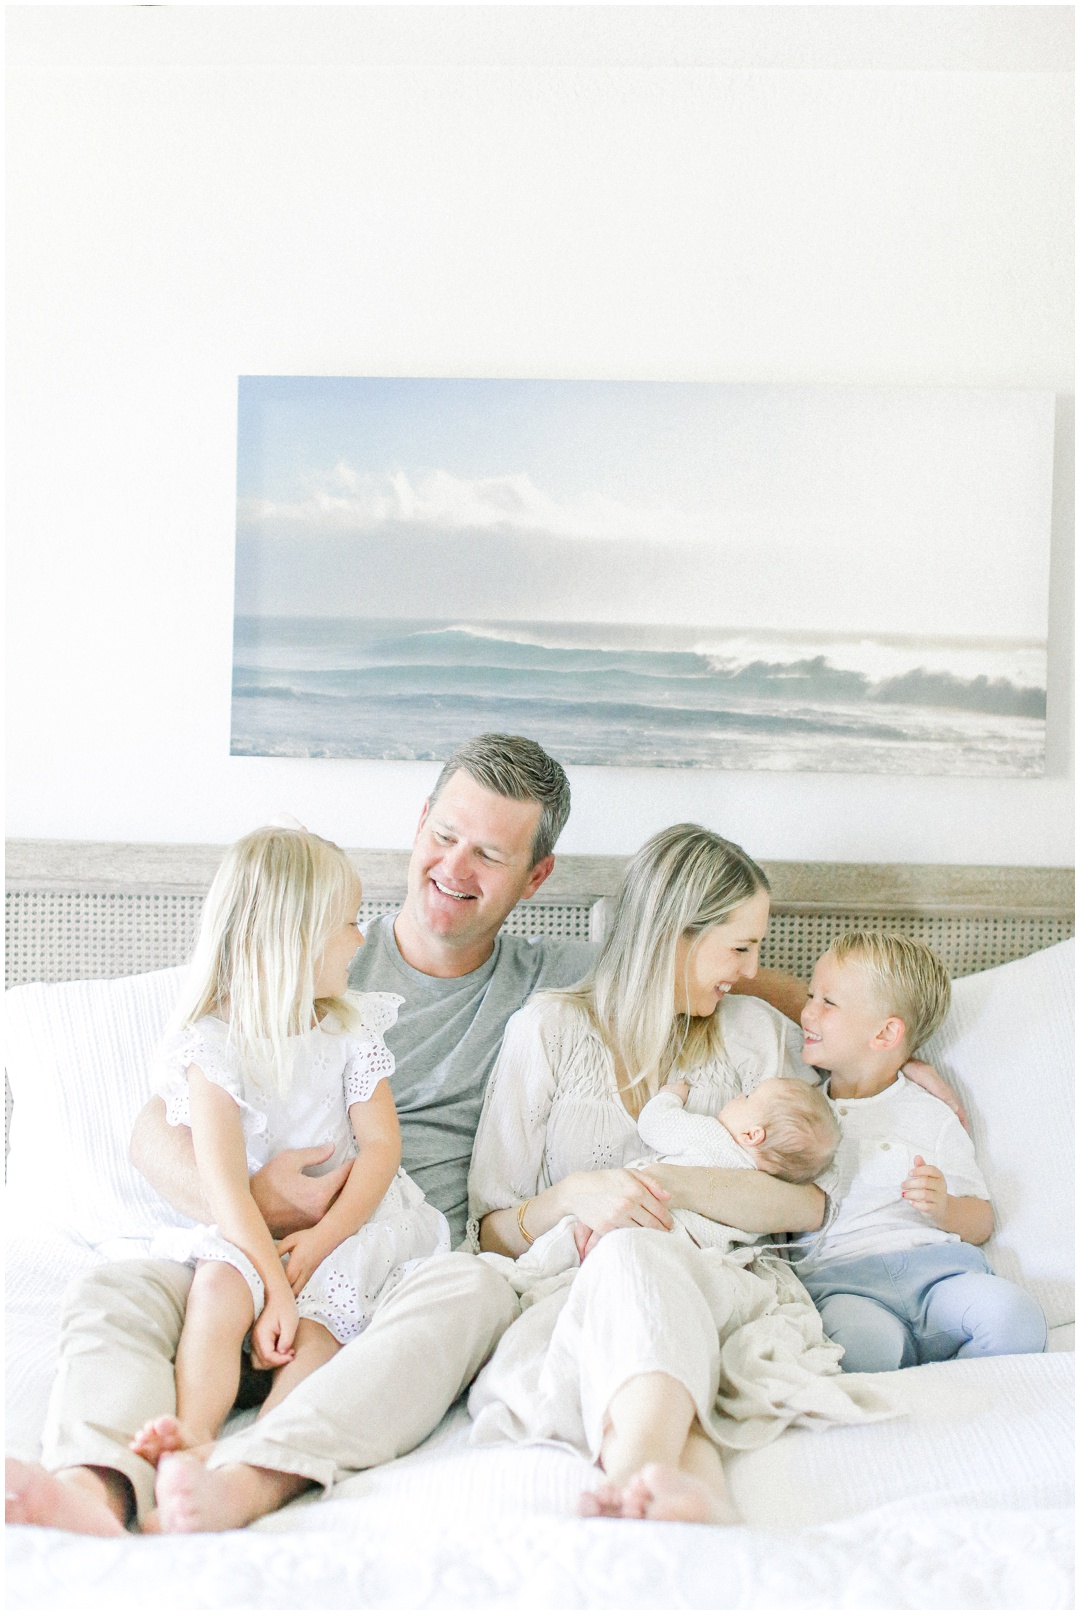 Newport_Beach_Newborn_Light_Airy_Natural_Photographer_Newport_Beach_Photographer_Orange_County_Family_Photographer_Cori_Kleckner_Photography_Newport_Beach_Photographer_Courtney_Roach__4081.jpg